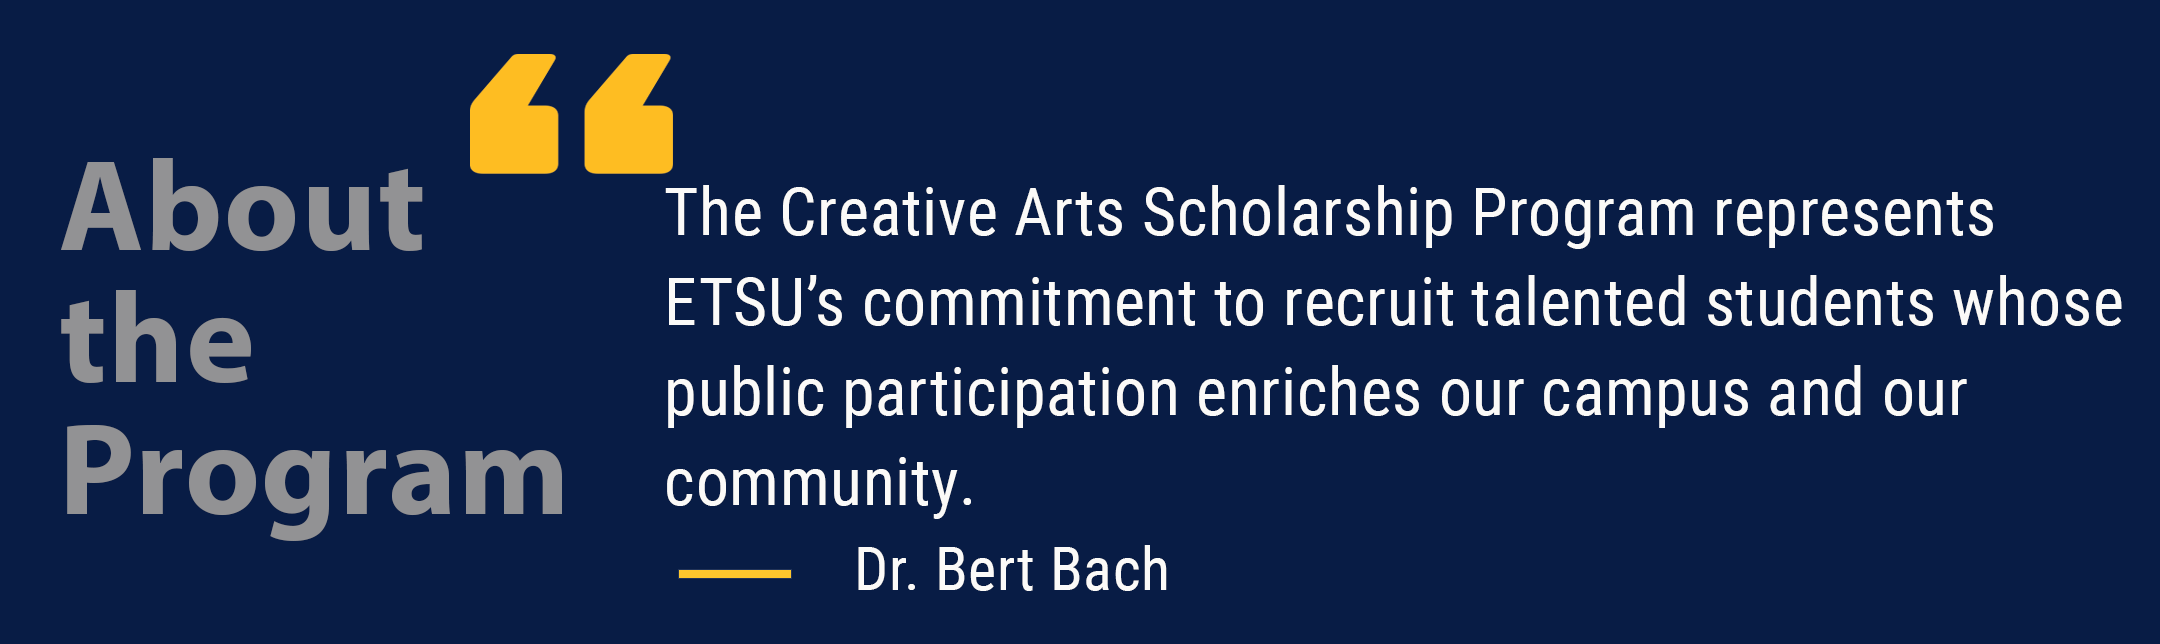 Creative Arts Scholarship Quote